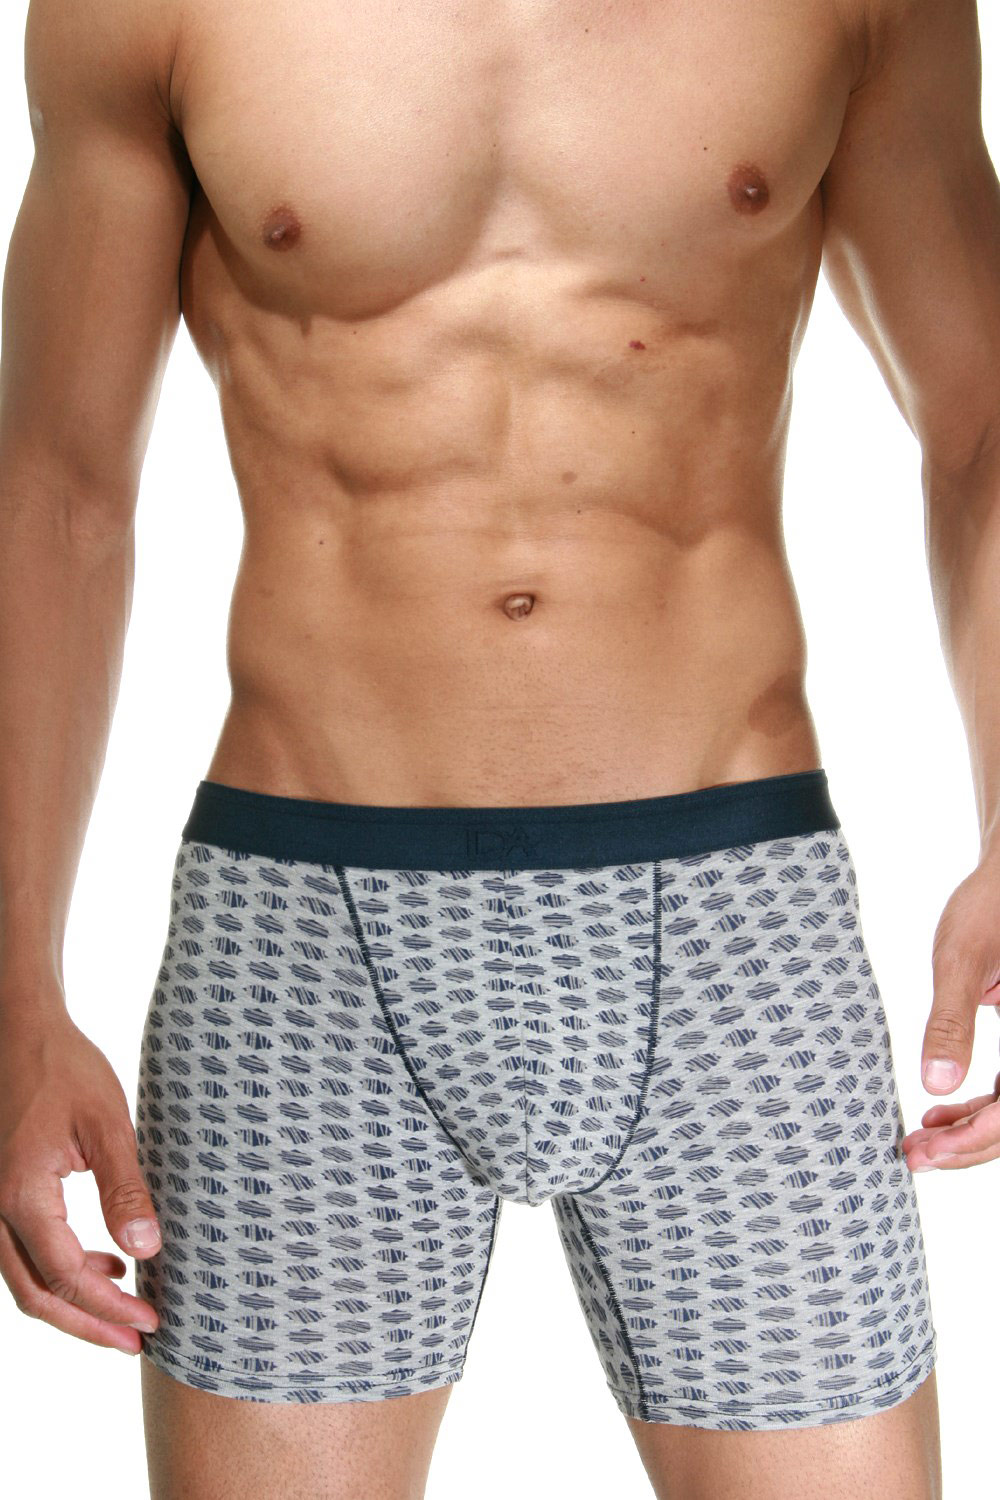 DOREANSE trunks 3 pieces at oboy.com